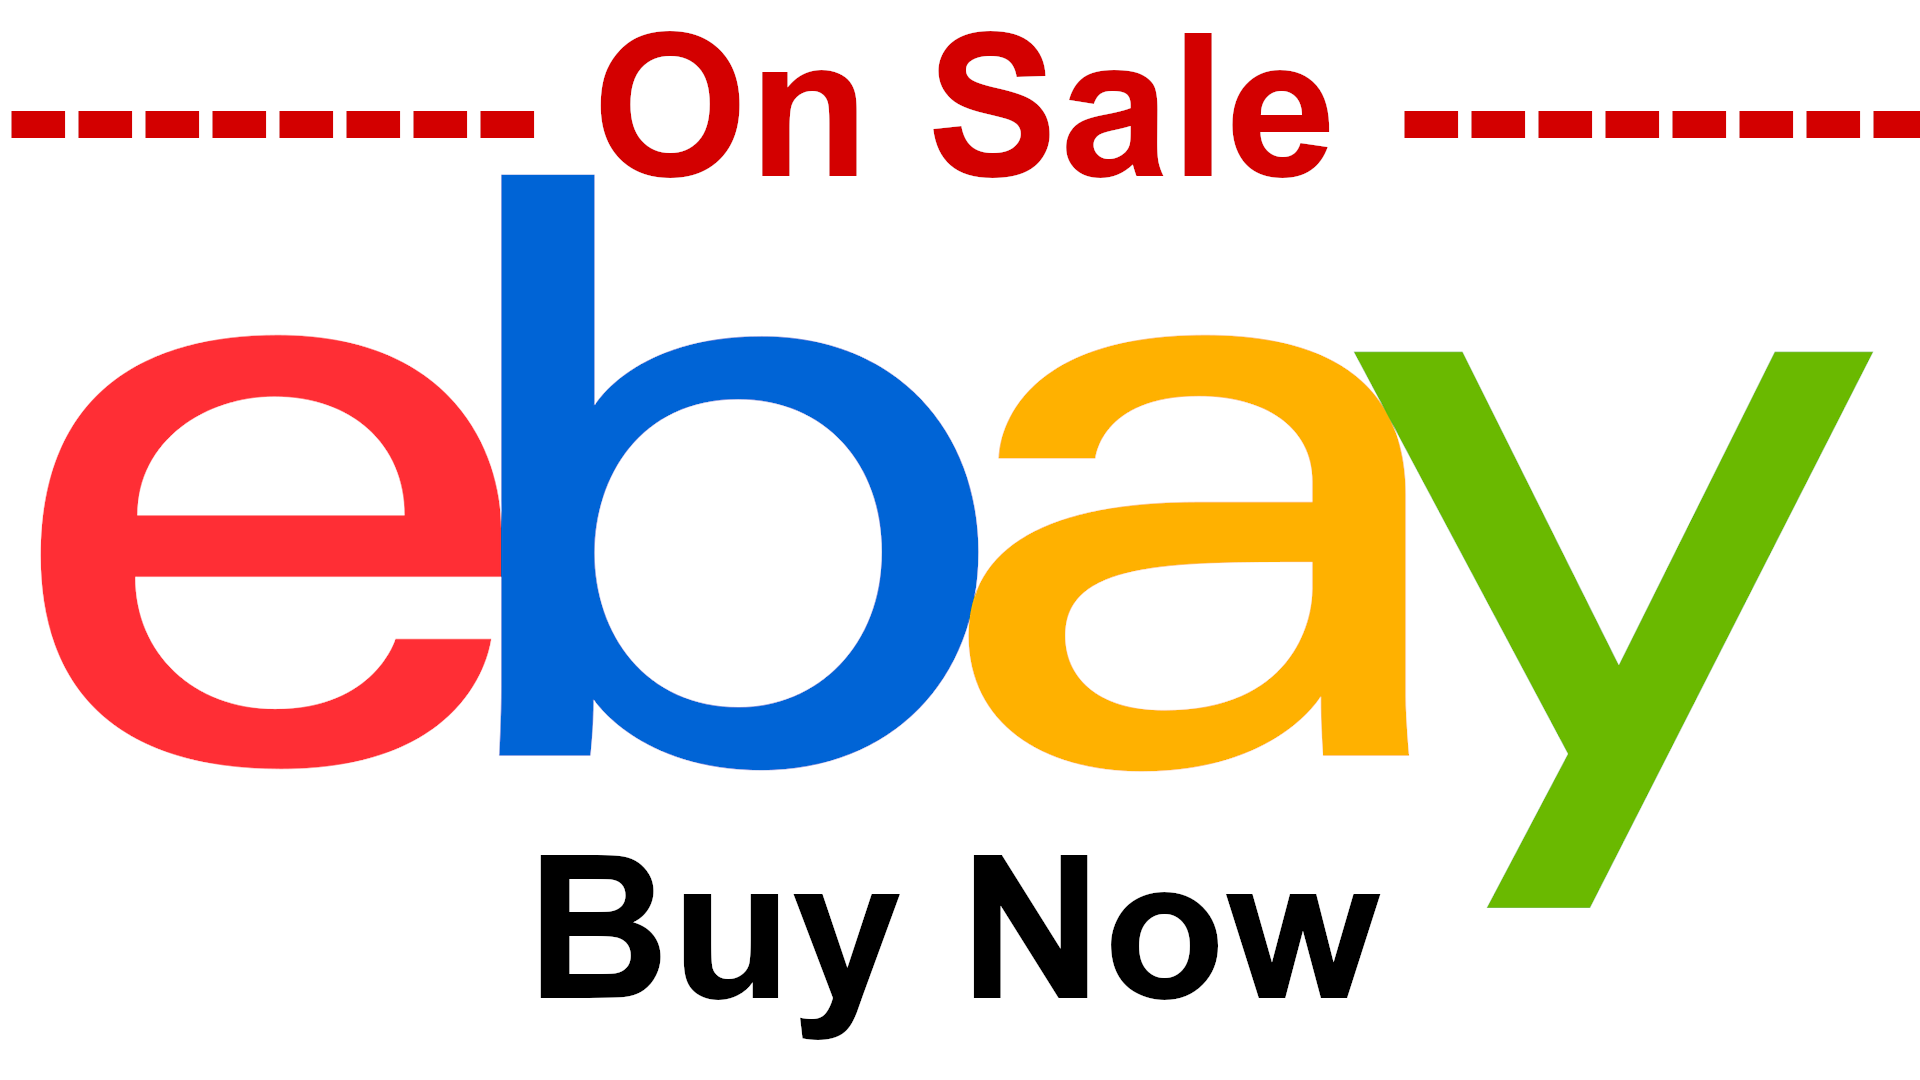 Ebay Logo buy now on sale